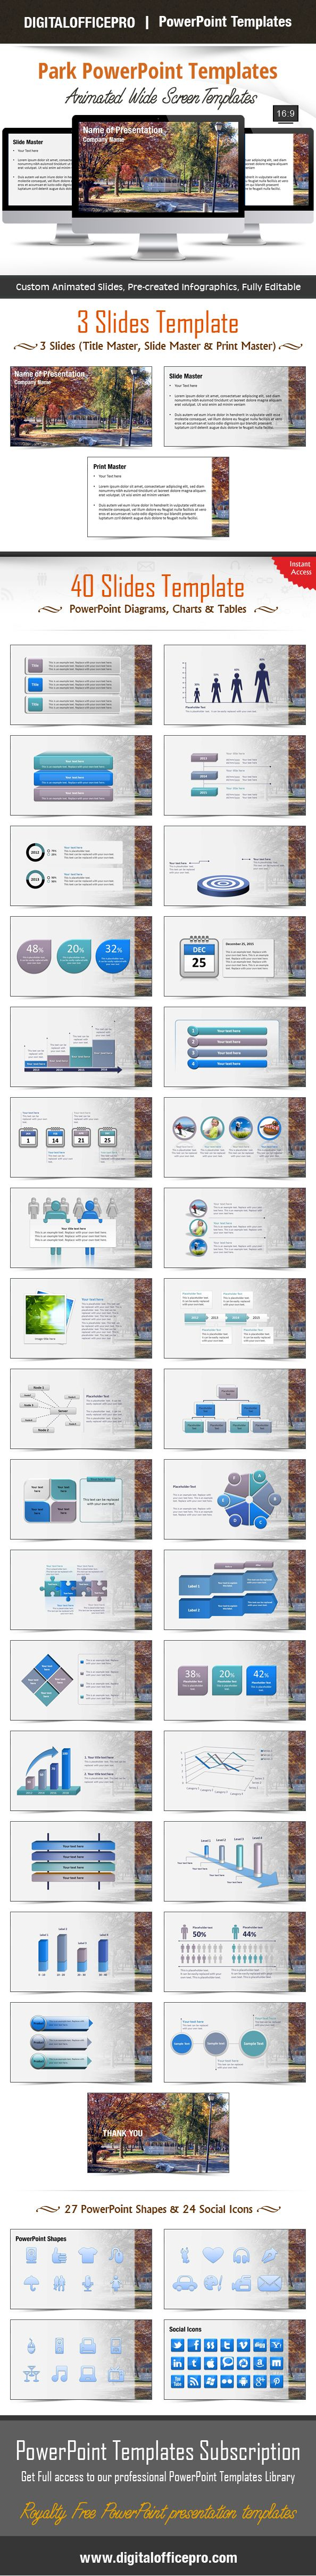 43 best diagrams powerpoint templates images on pinterest 43 best diagrams powerpoint templates images on pinterest templates business presentation and charts toneelgroepblik Choice Image